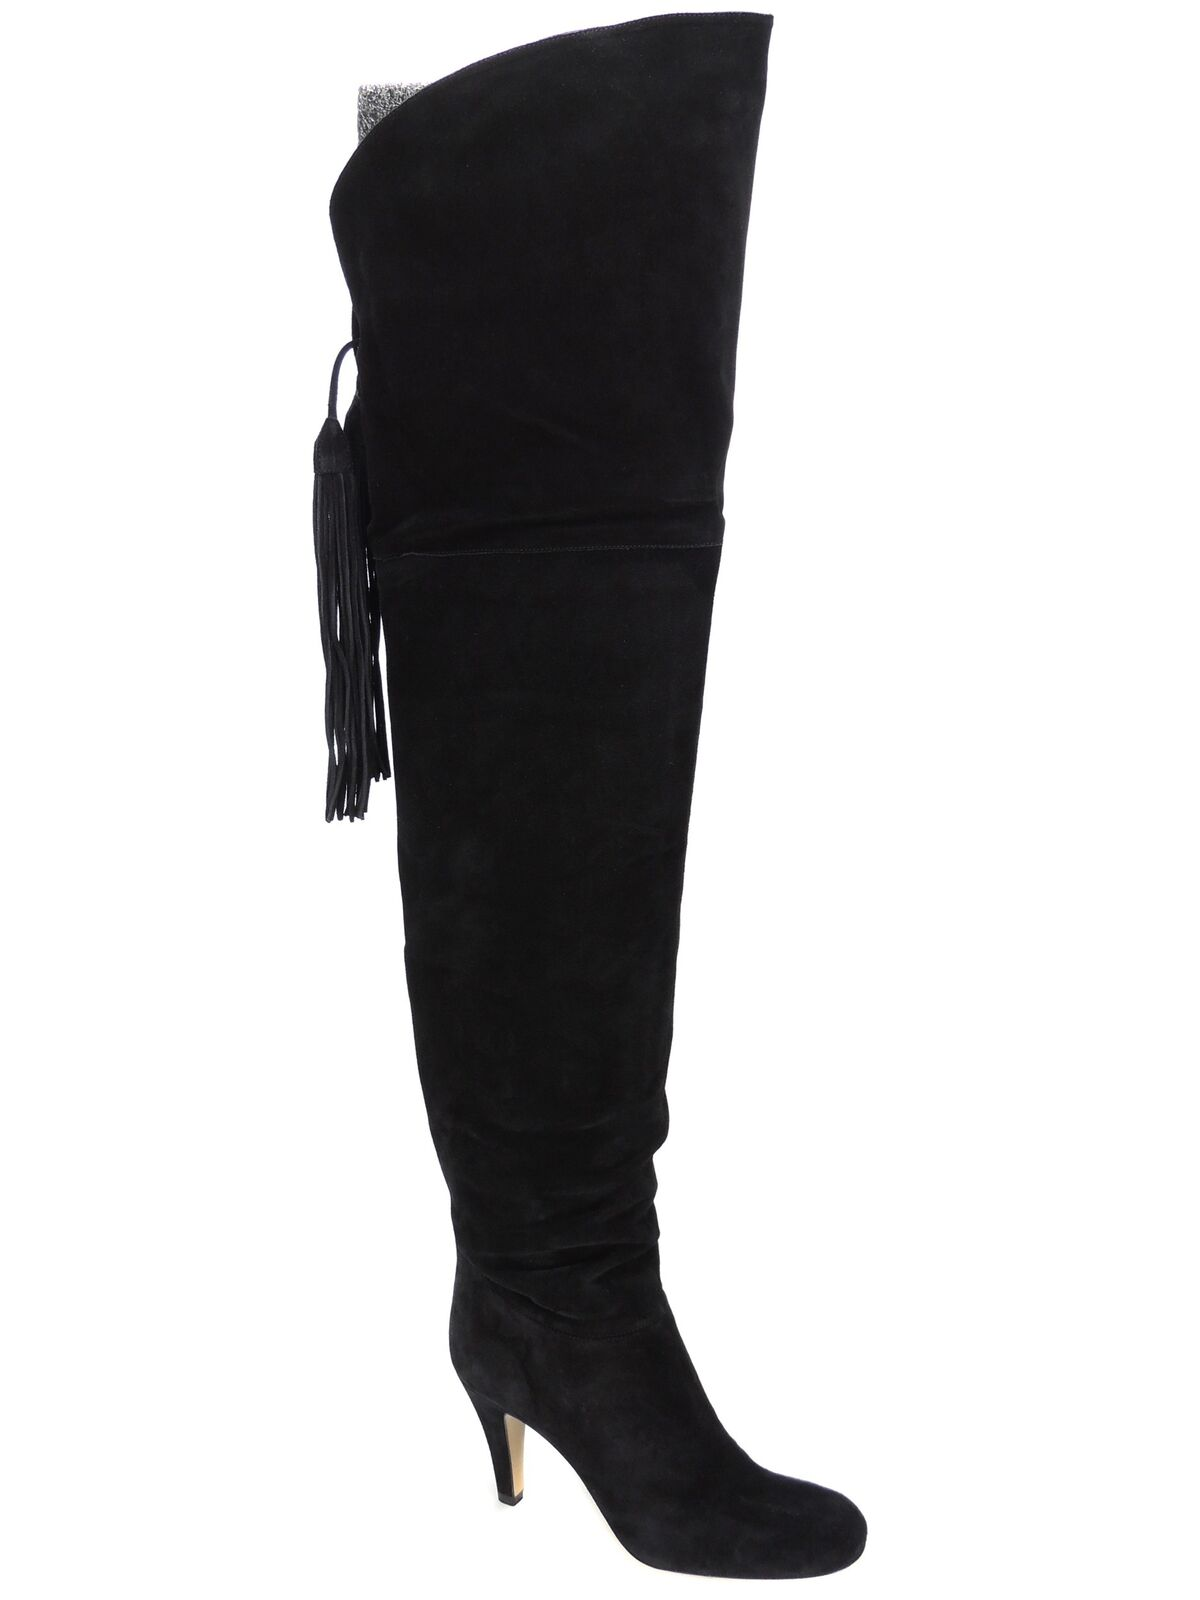 Chloé Women's Fringe Cuissar Tie Back Over the Knee Boots Black ; US 6M